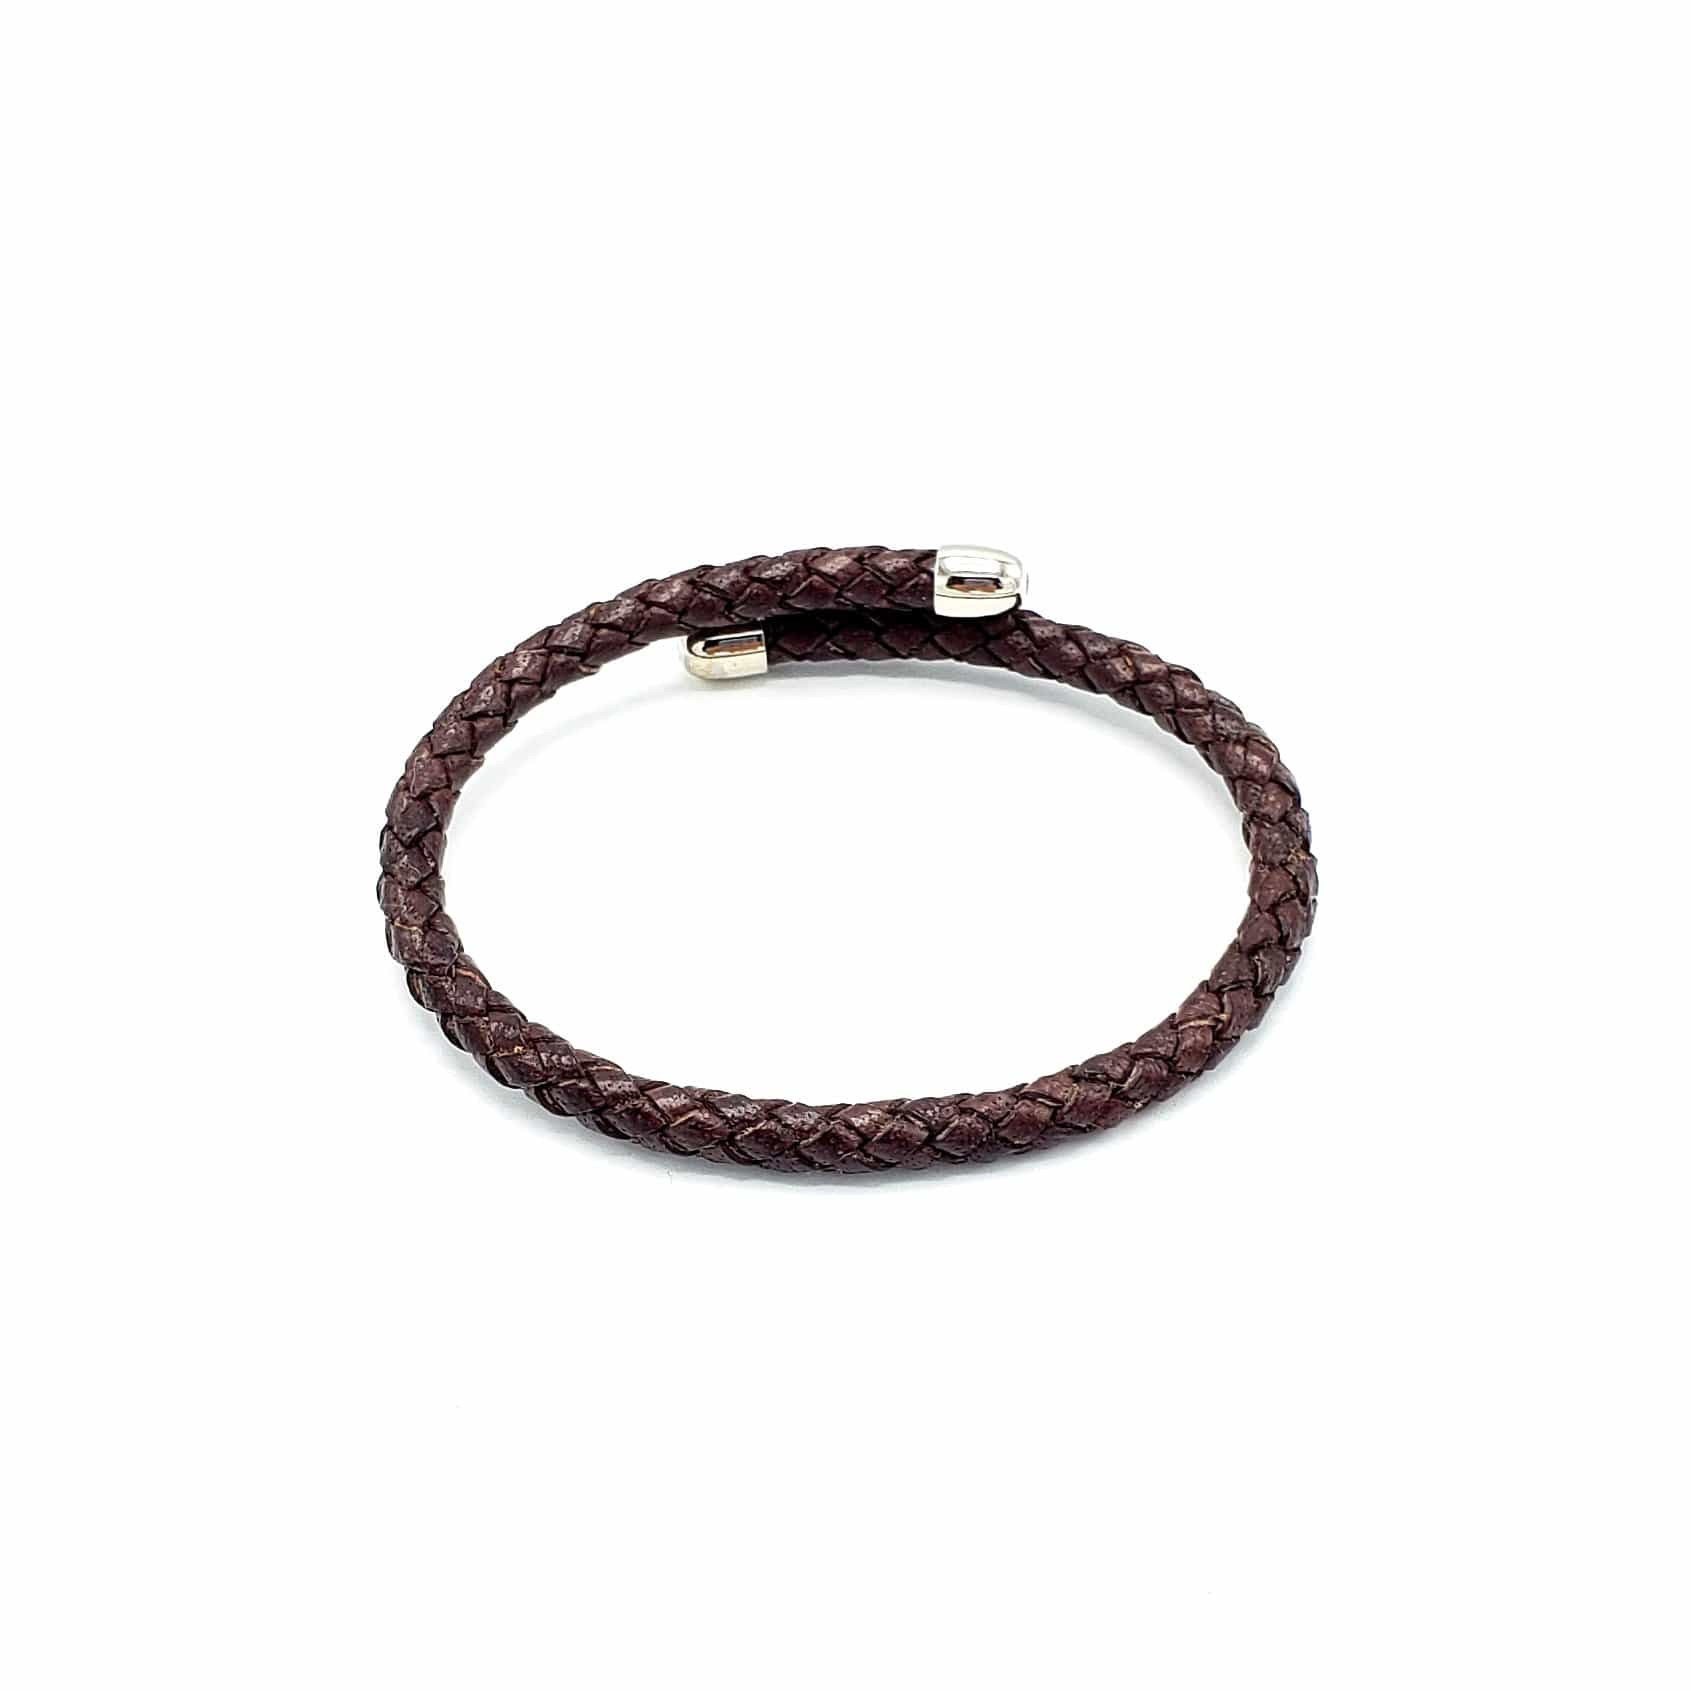 B109 Man-Unisex Semirigid leather Bracelet - Selleria Veneta